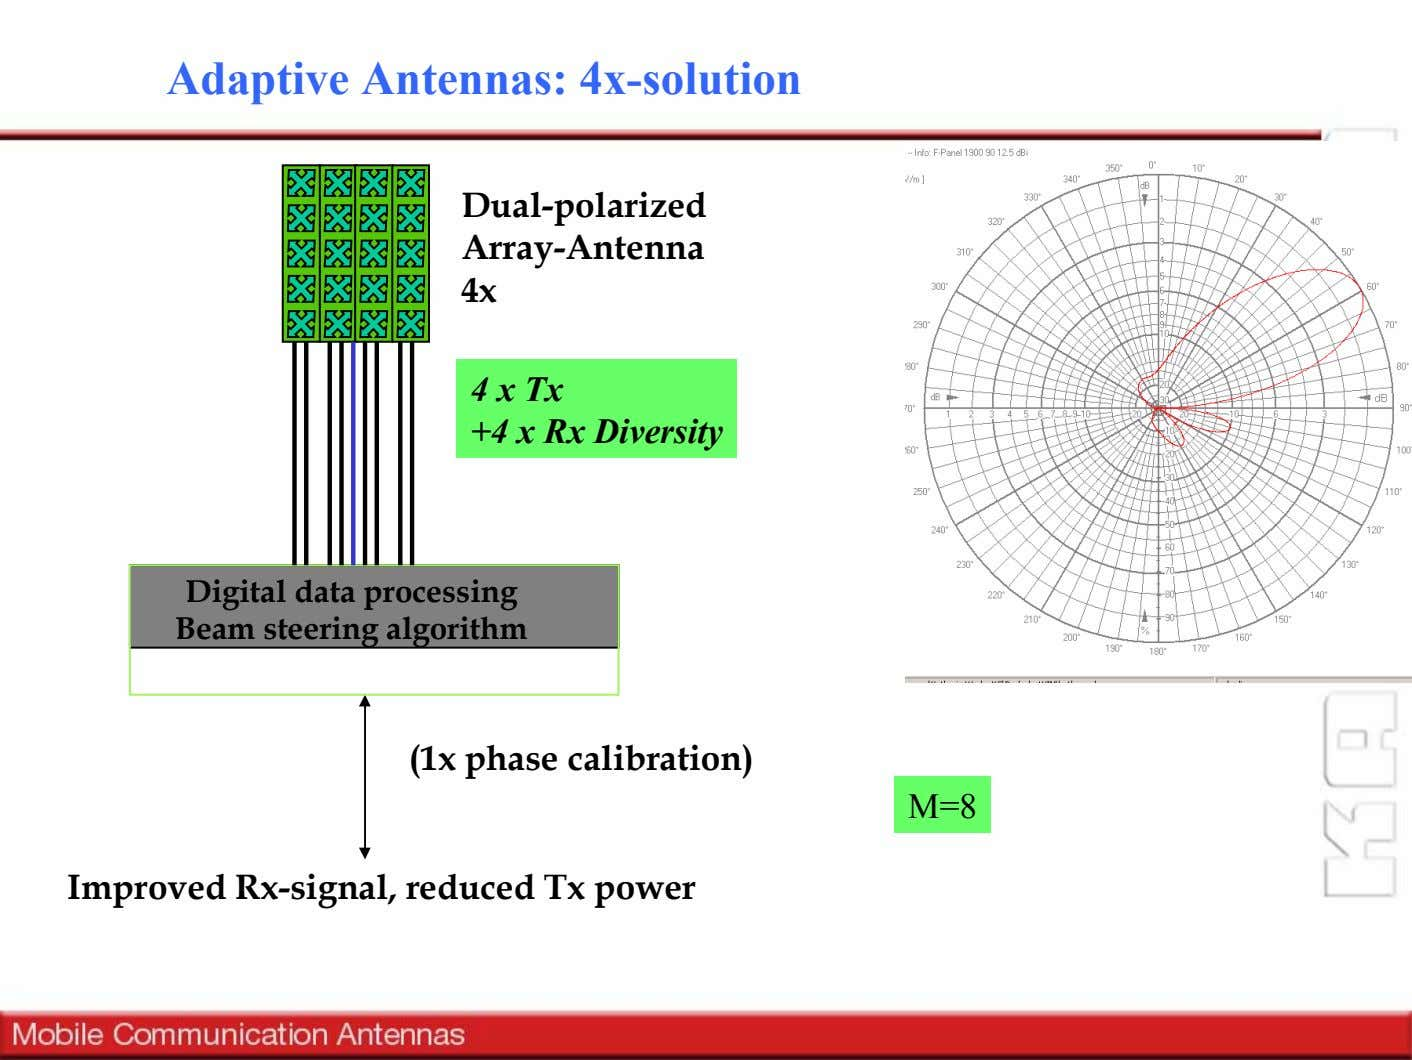 Adaptive Antennas: 4x-solution Dual-polarized Array-Antenna 4x 4 x Tx +4 x Rx Diversity Digital data